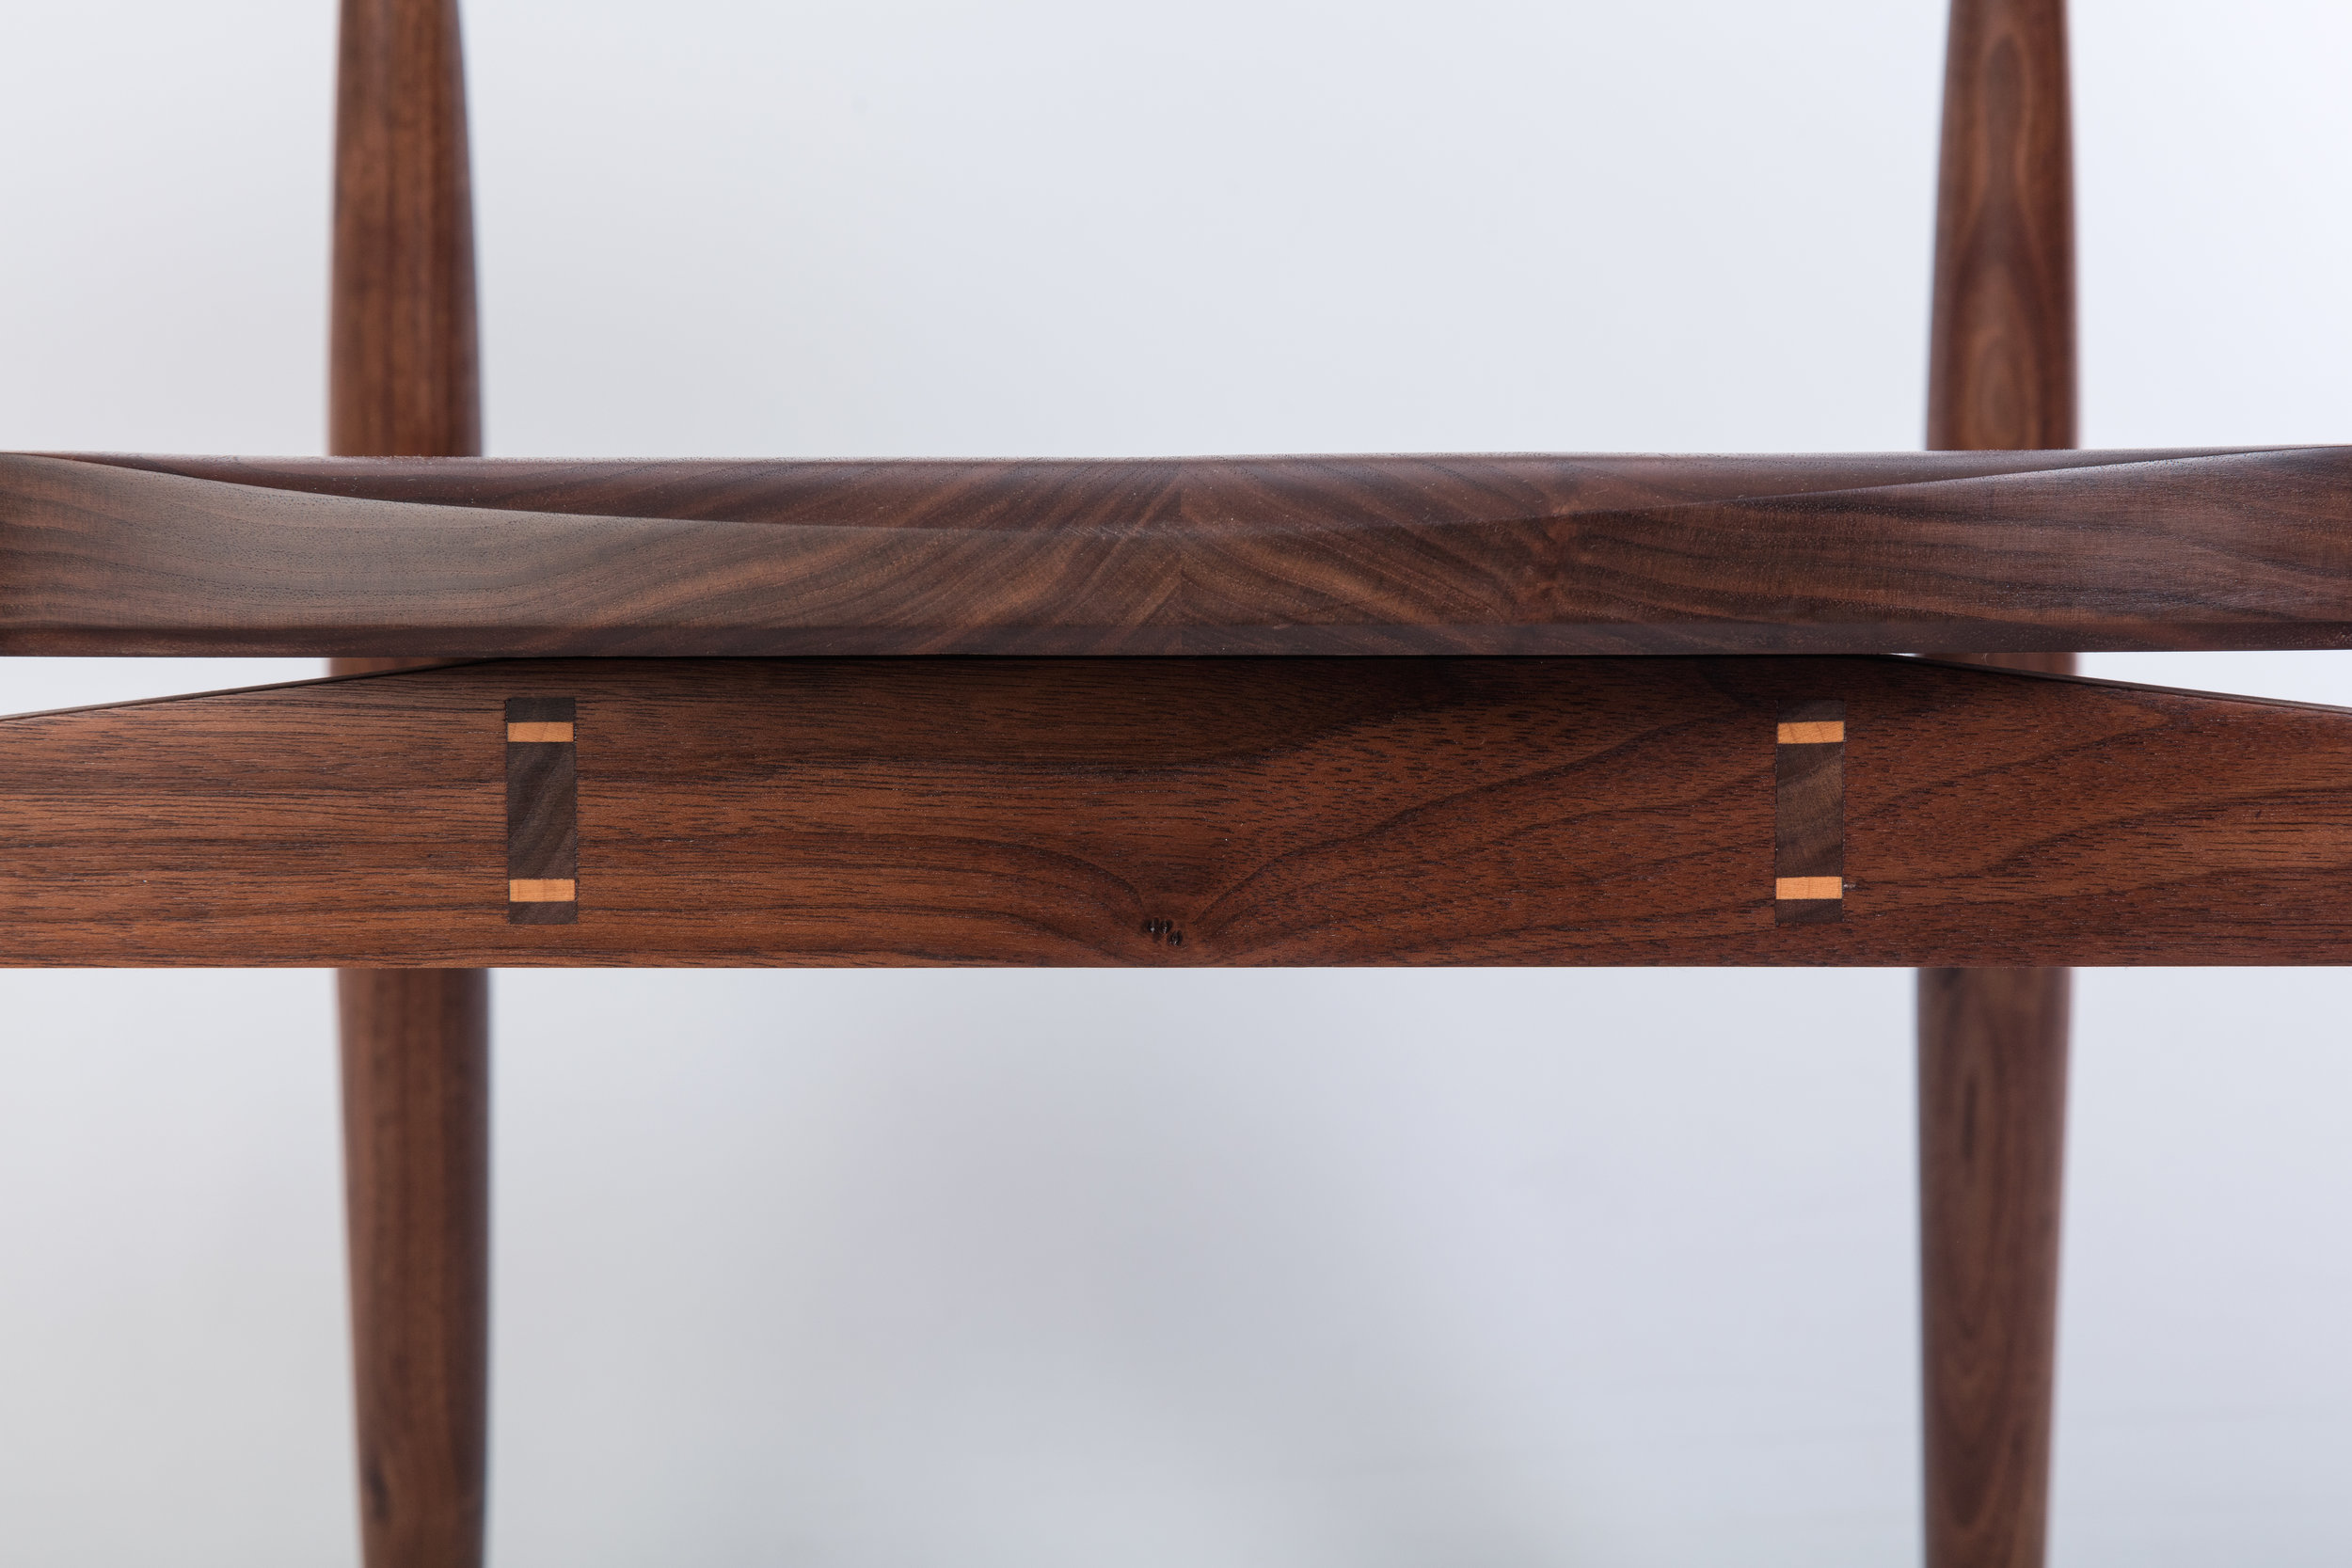 Detail of exposed joinery in  Anna's Chair